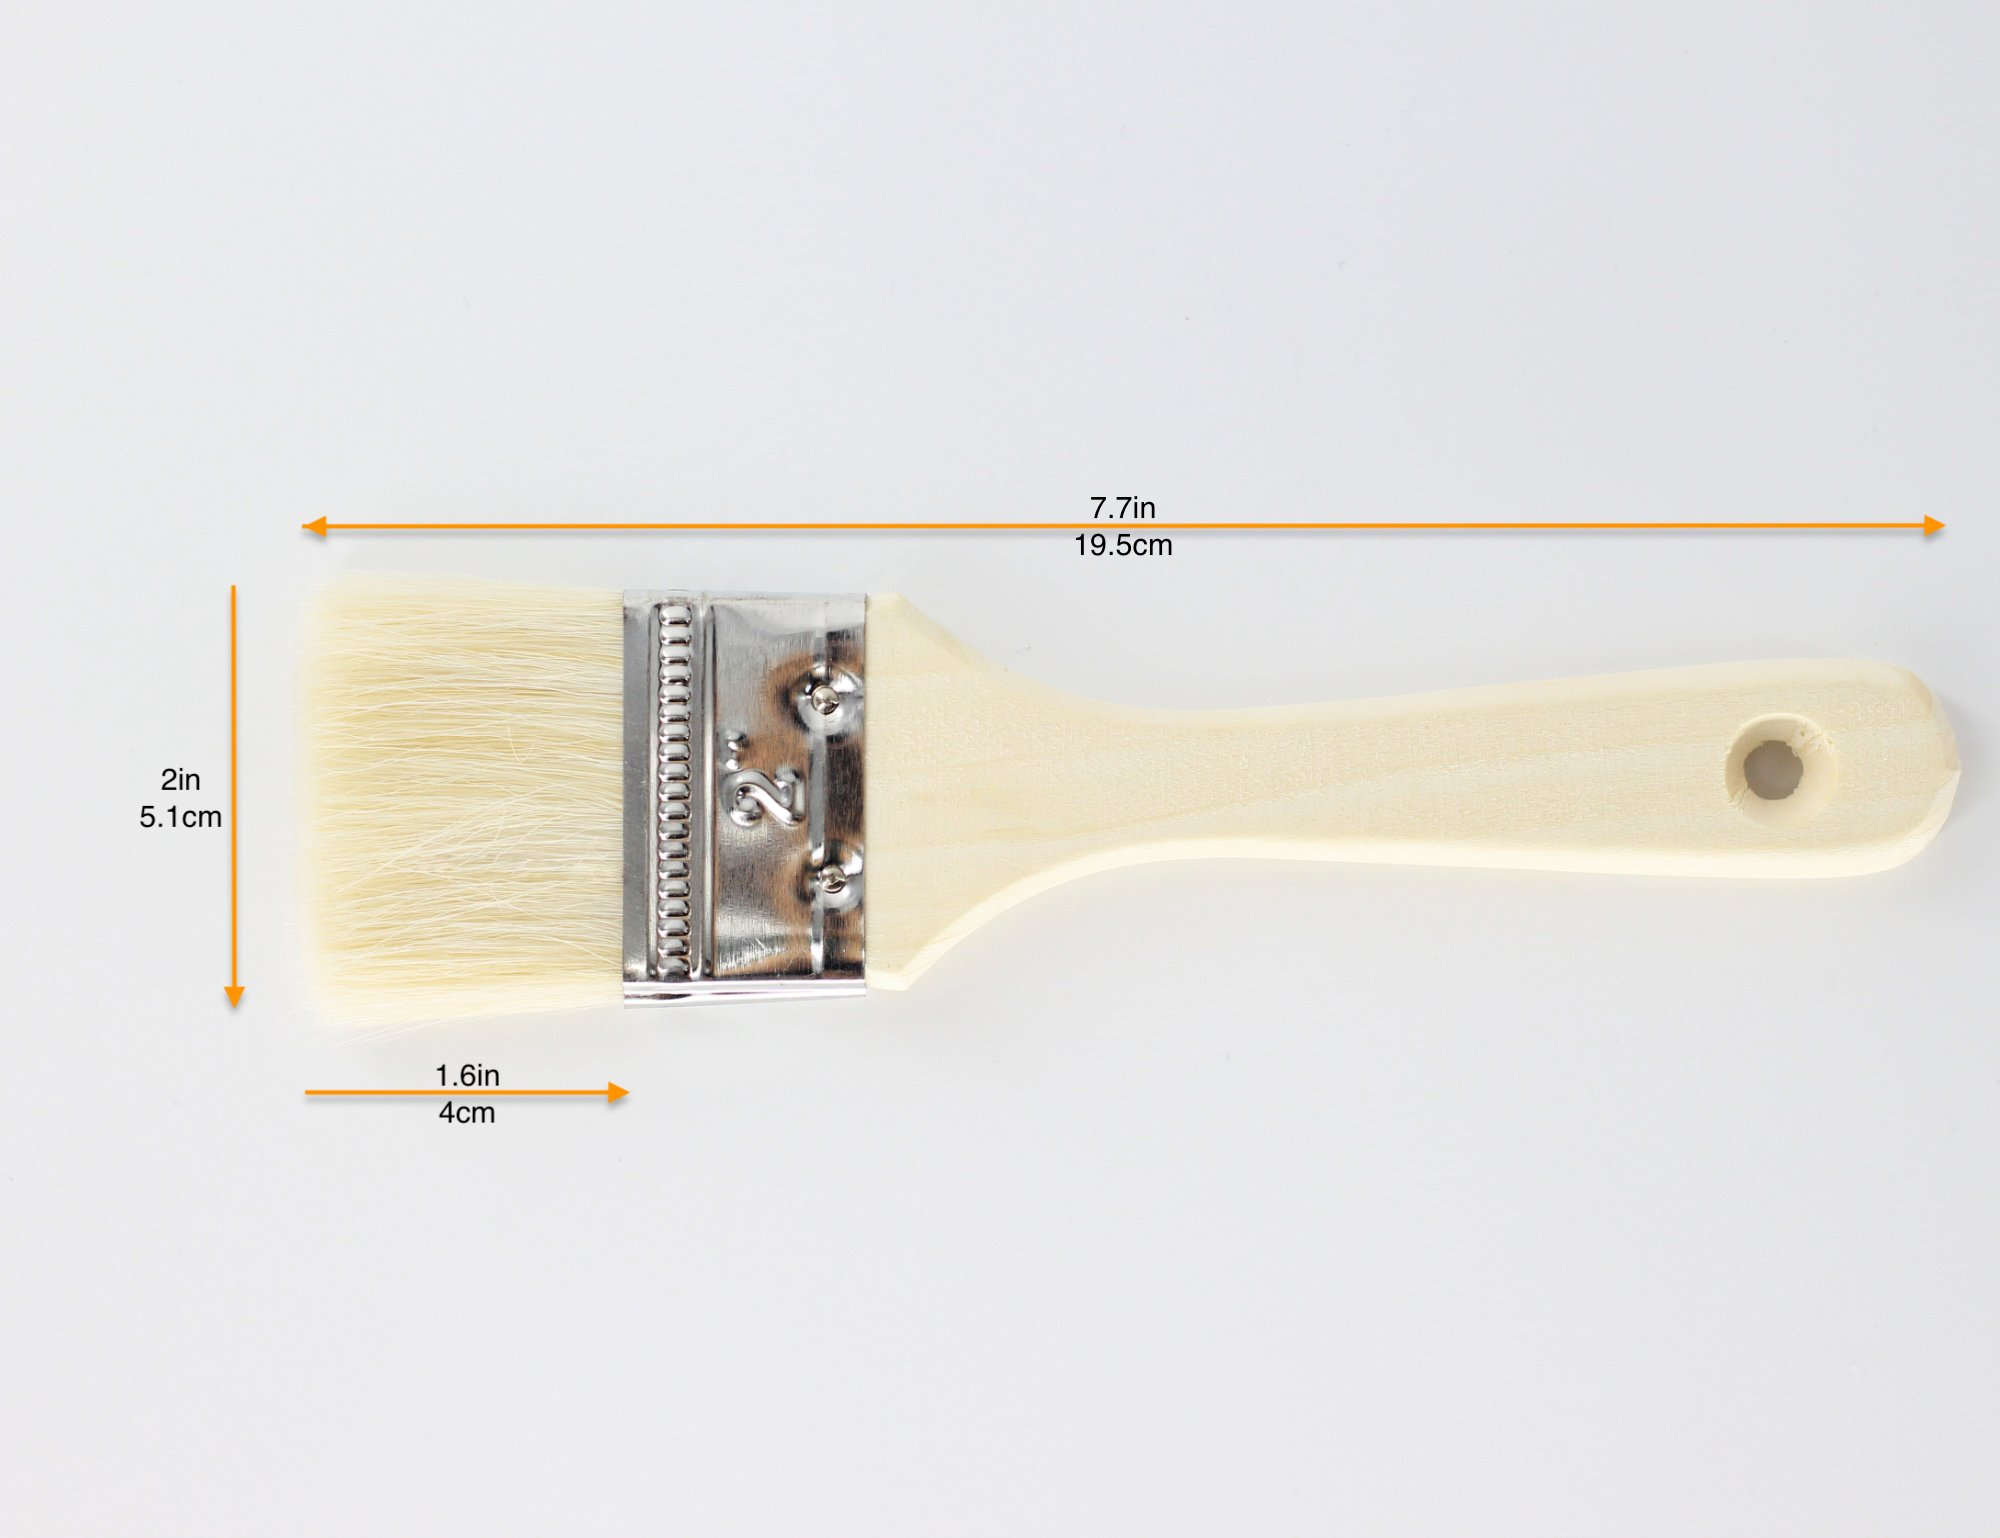 Fiomia Pastry Brush 2 High quality woolen bristle: thick and flexible, safe and eco-friendly, even pasting, beautiful texture, durable Full wooden handle: streamlined design and comfort grip, easy to hang and save space High efficiency: absorbent, save time and effort